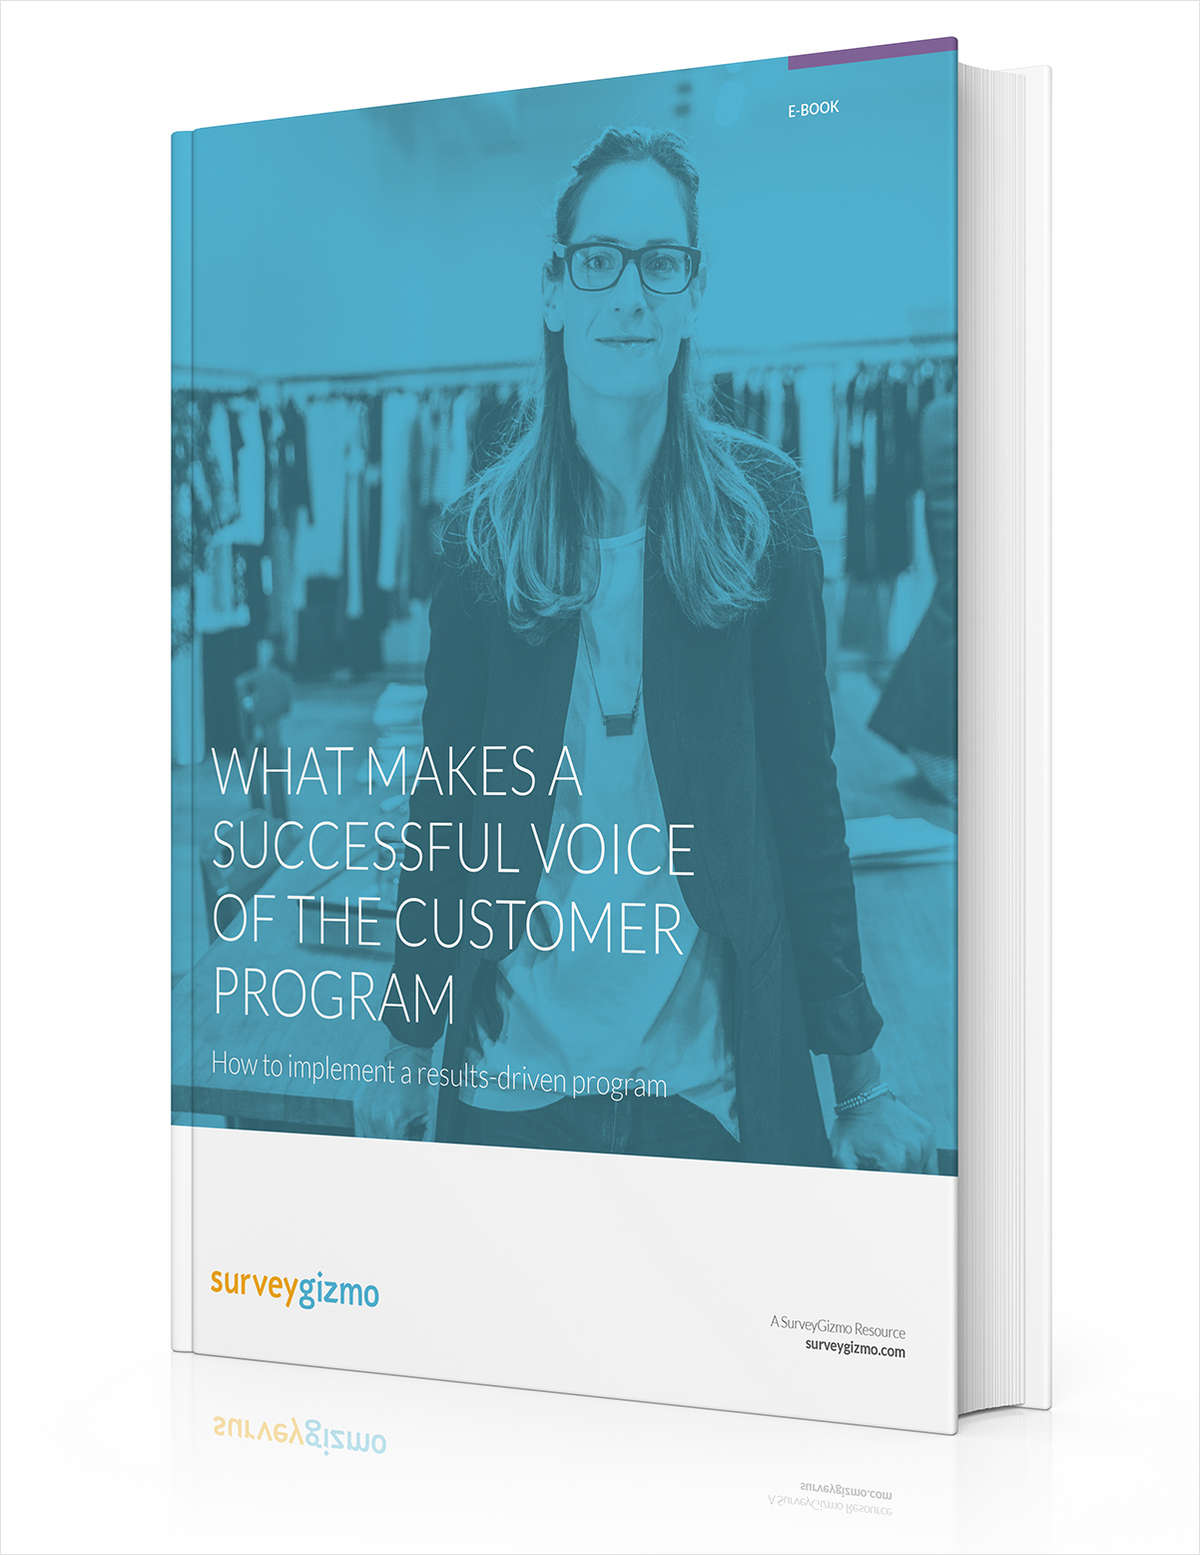 What Makes a Successful Voice of the Customer Program